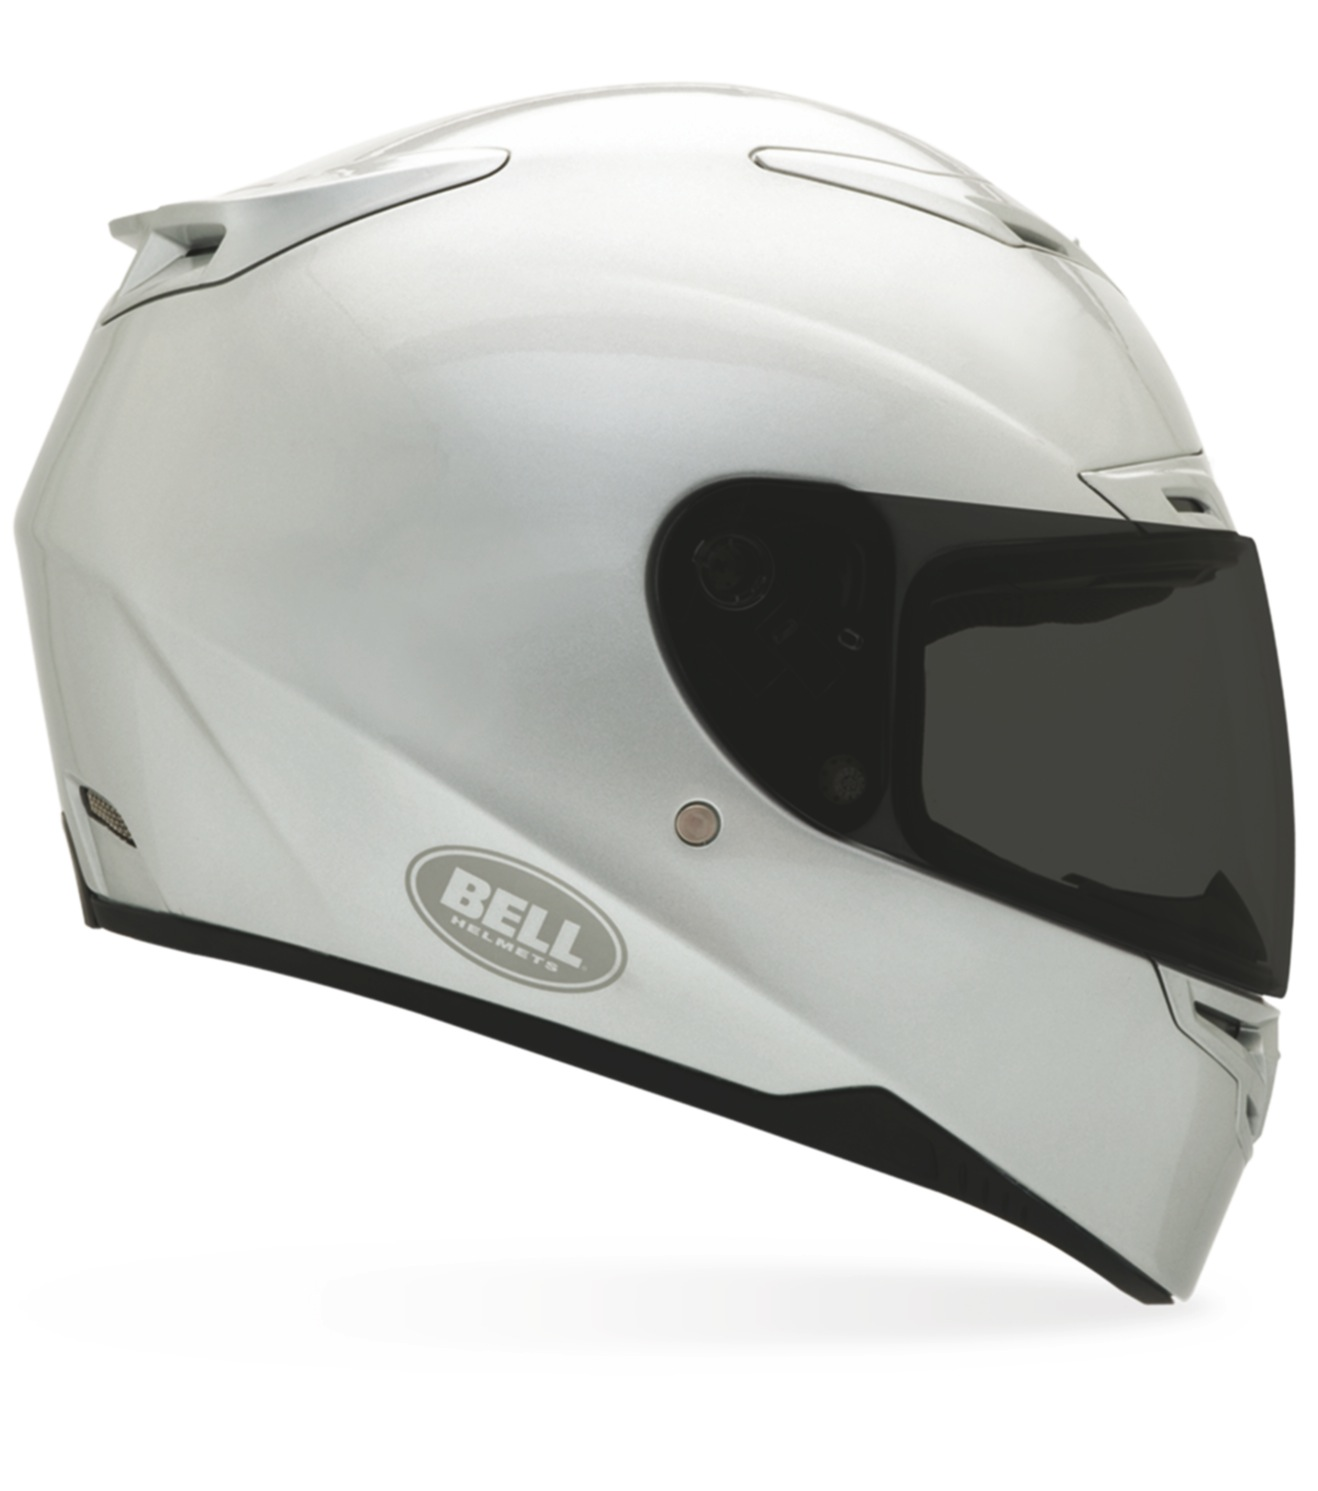 Bell-RS-1-Motorcycle-Helmet-White